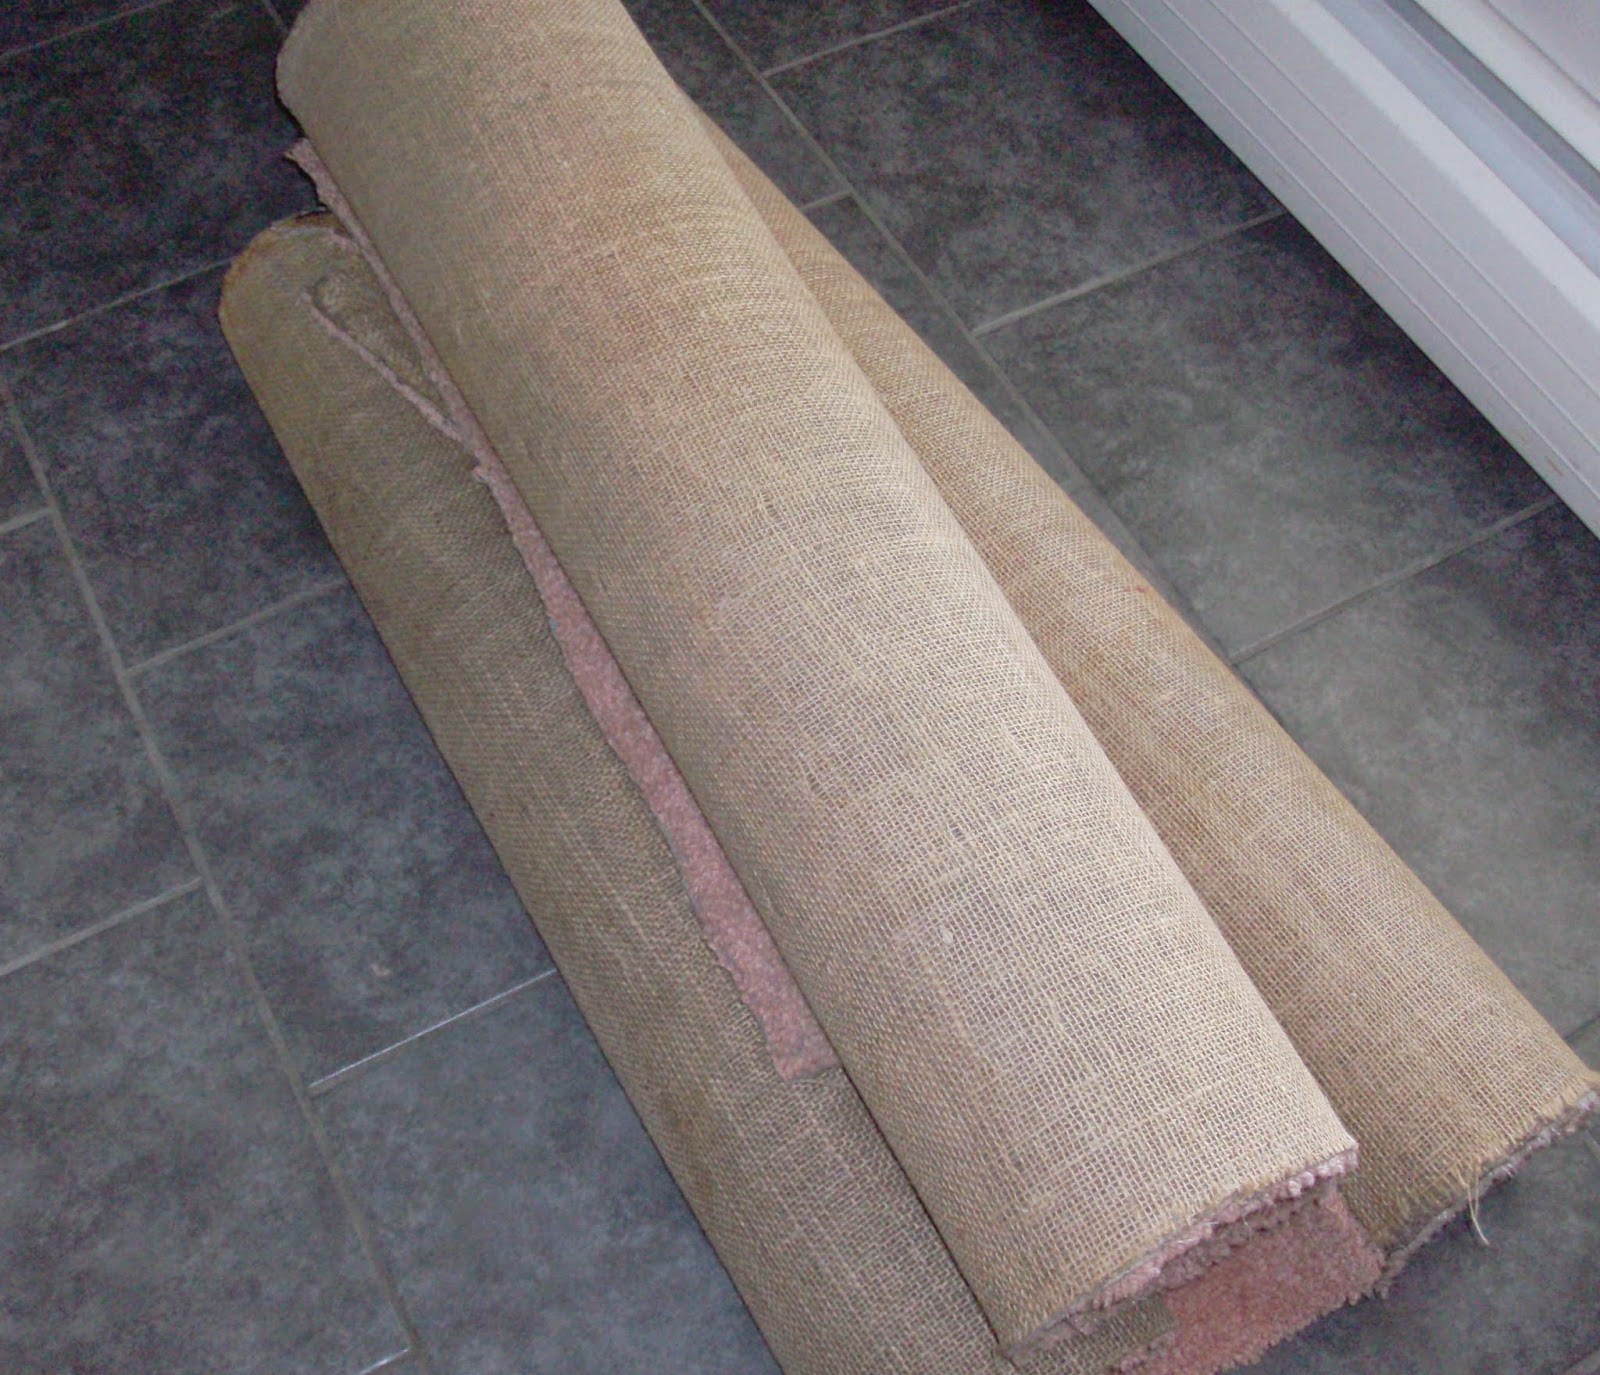 reuse carpet, landfill, Kijiji, TJ's green adventure